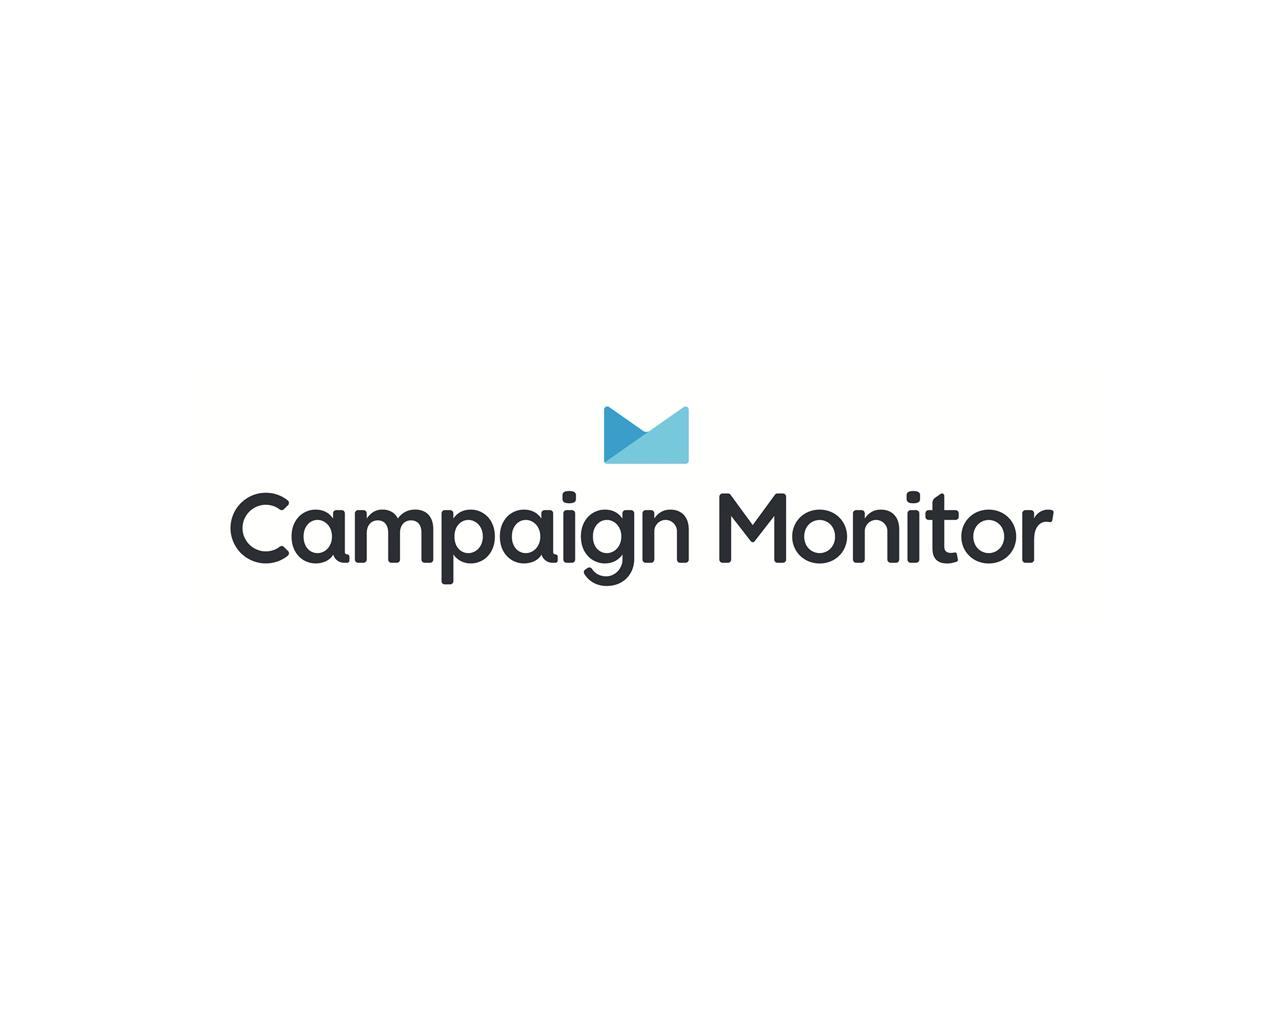 Campaign Monitor Responsive HTML Email Template By Glennsmith On - Campaign monitor html templates